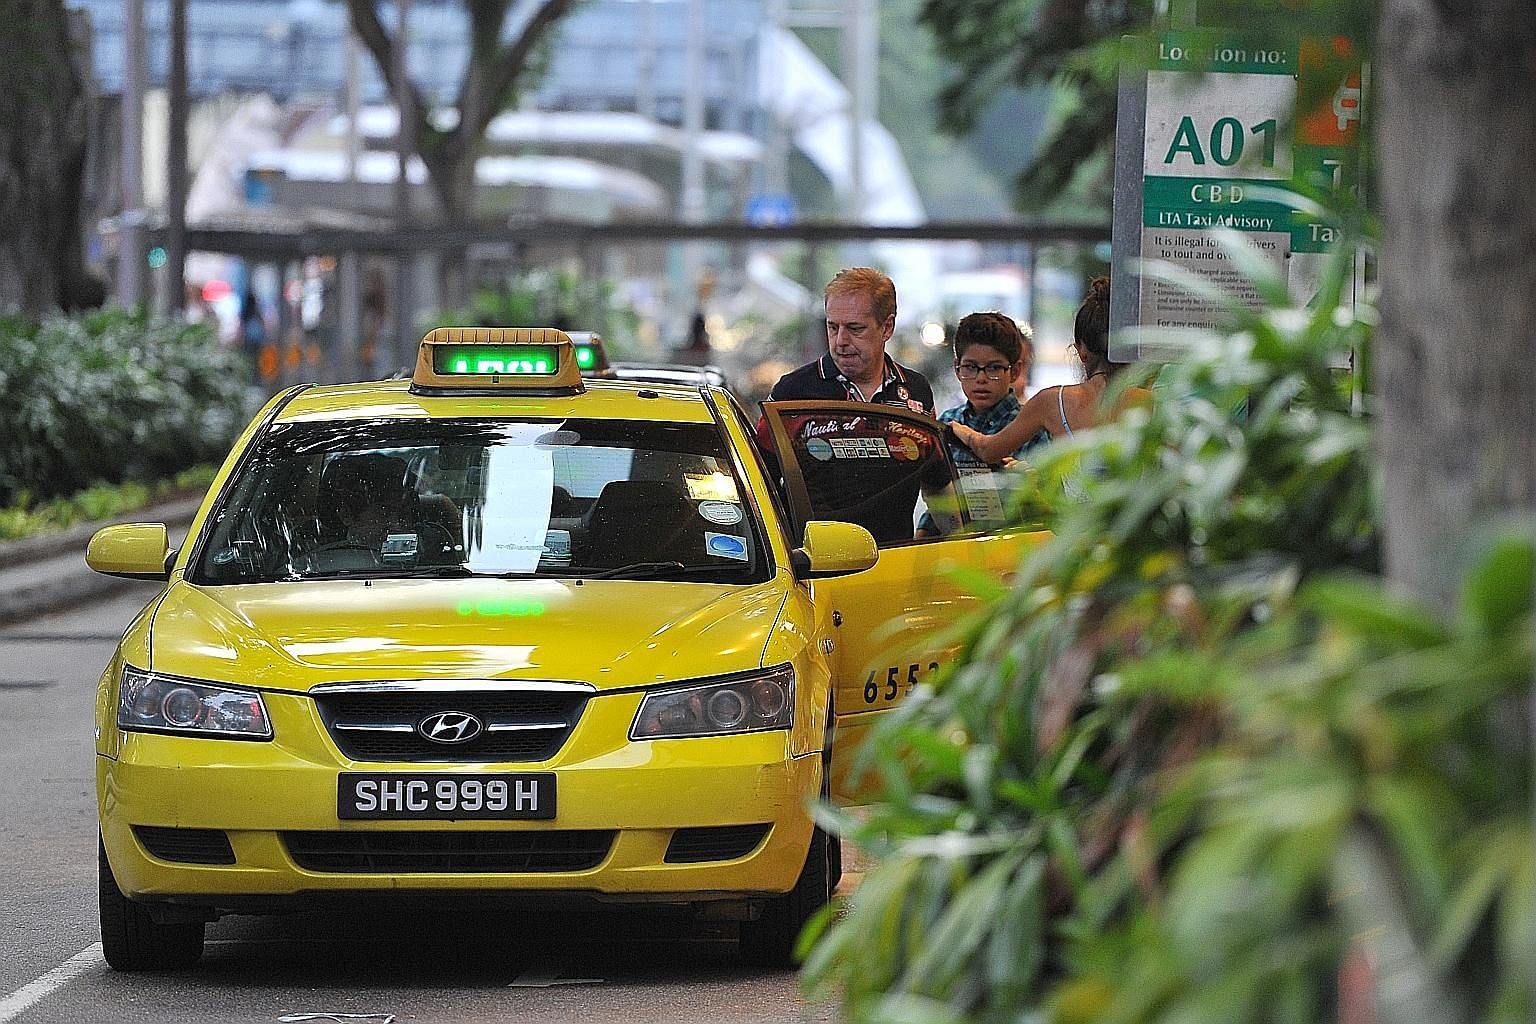 Revenue from ComfortDelGro's taxi business in Singapore increased by 2.8 per cent to $253.9 million. The corporation said it expects revenue from the bus, taxi and rail businesses to be higher.